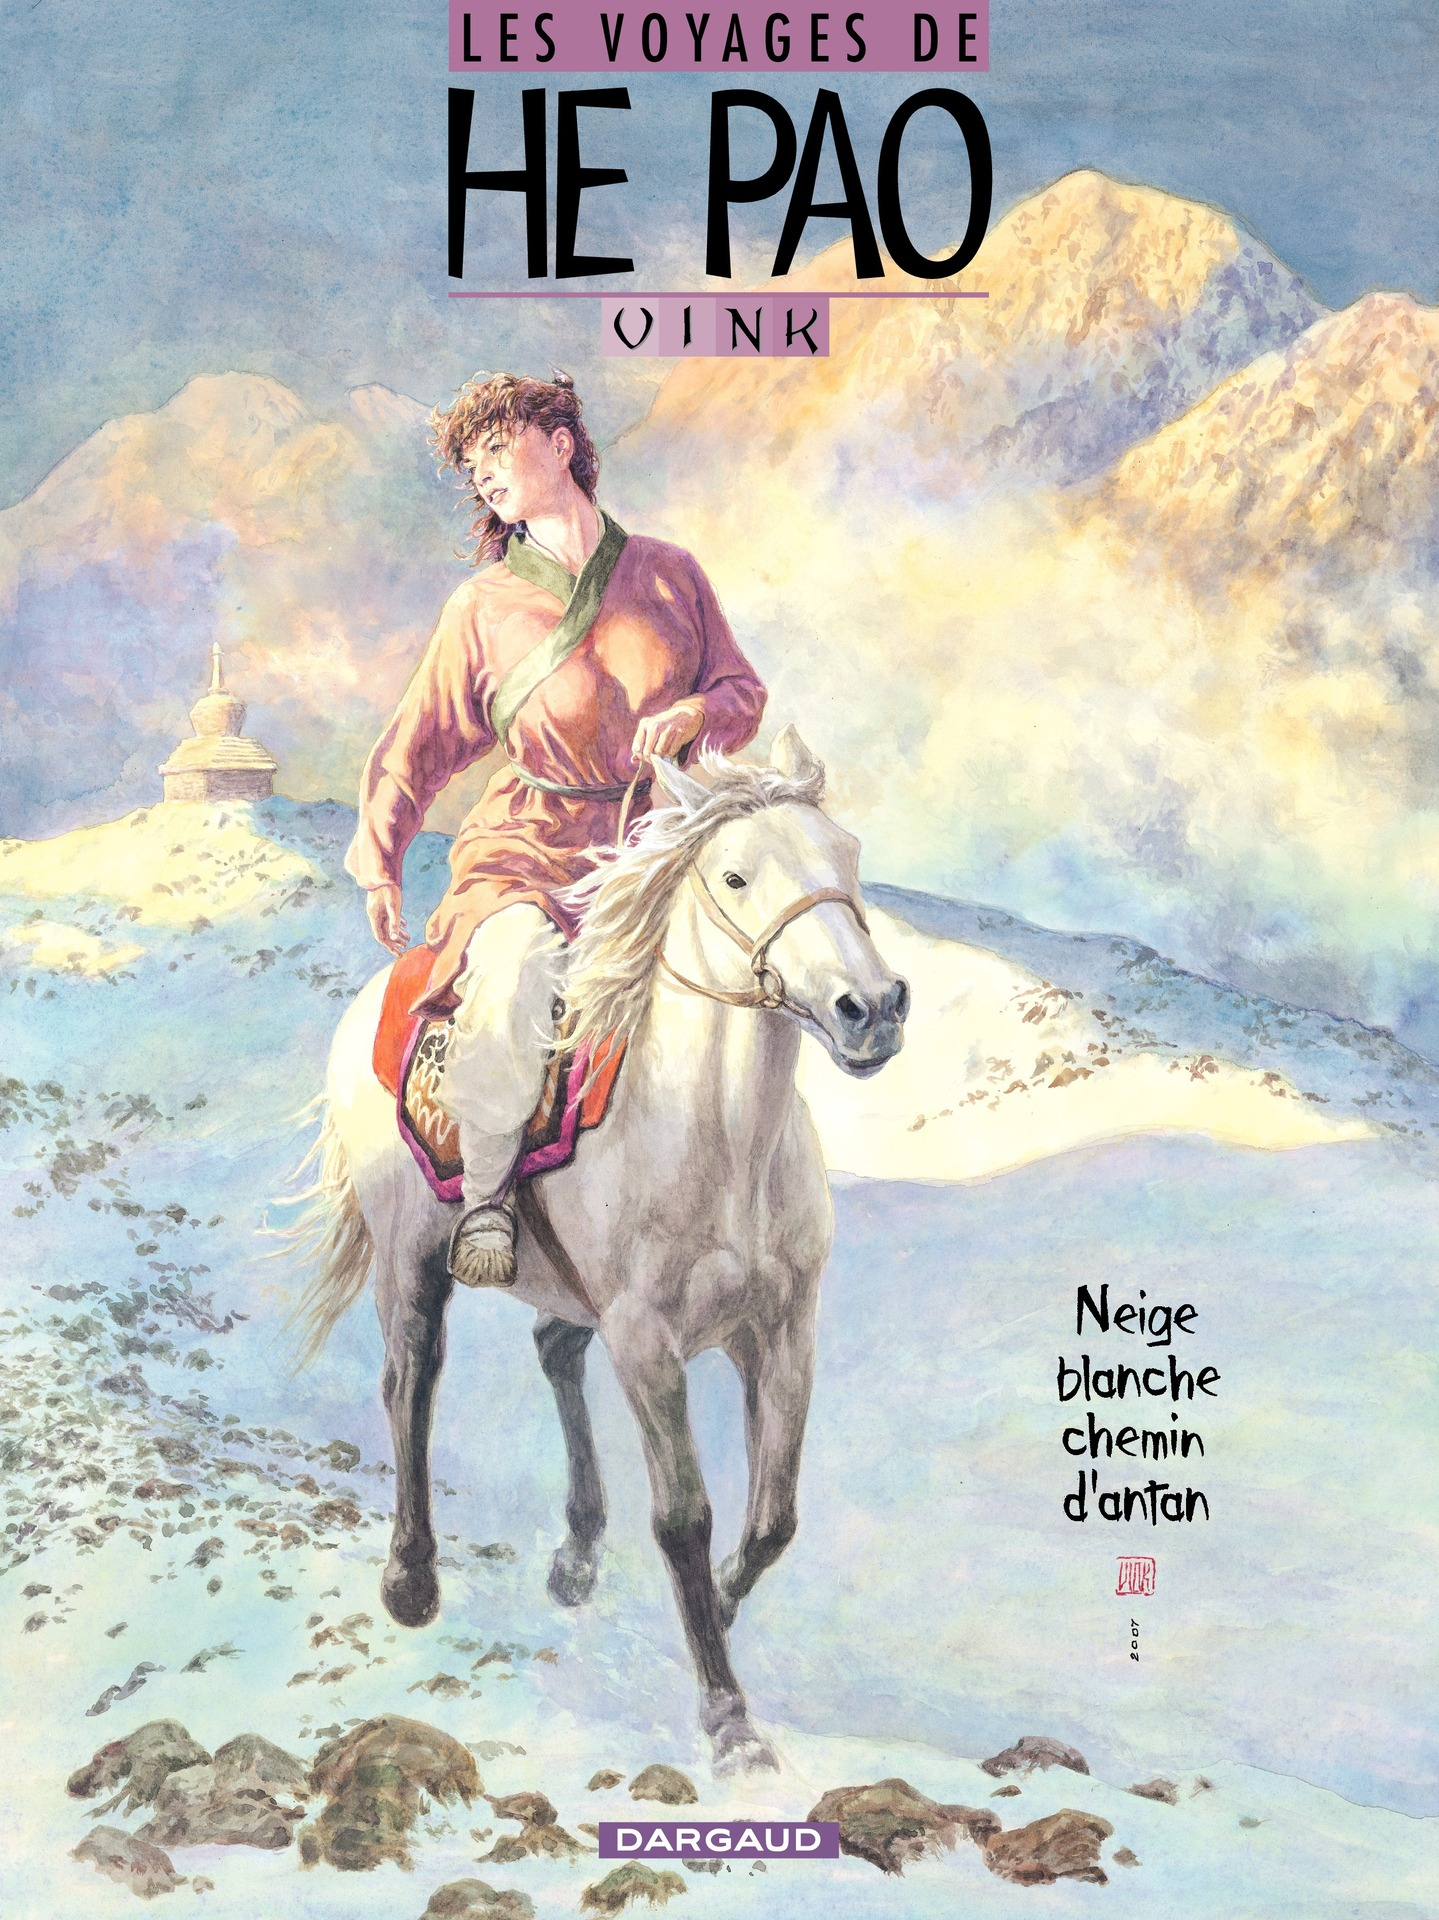 Les Voyages d'He Pao - Tome 4 - Neige blanche, chemin d'antan